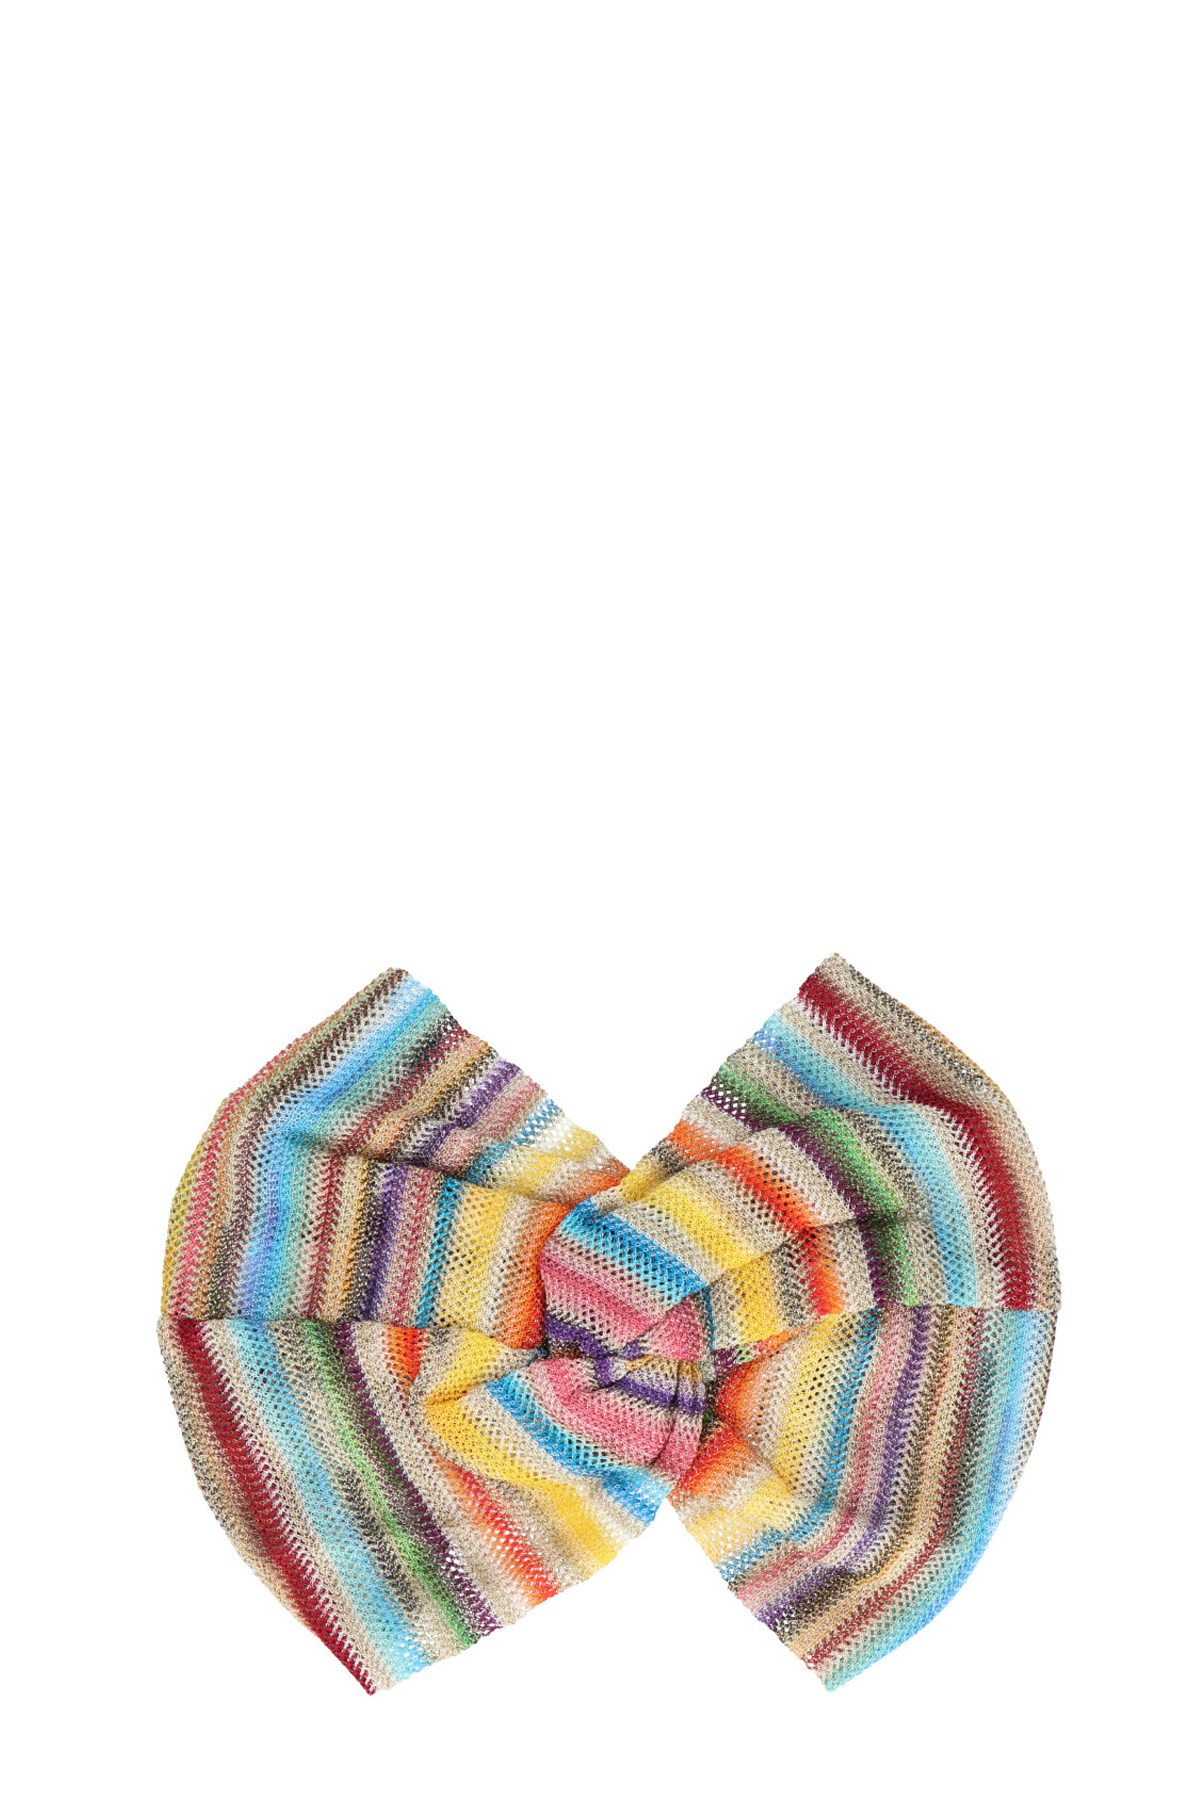 92d632545ad5d missoni mare lurex headband available on julian-fashion.com - 76829